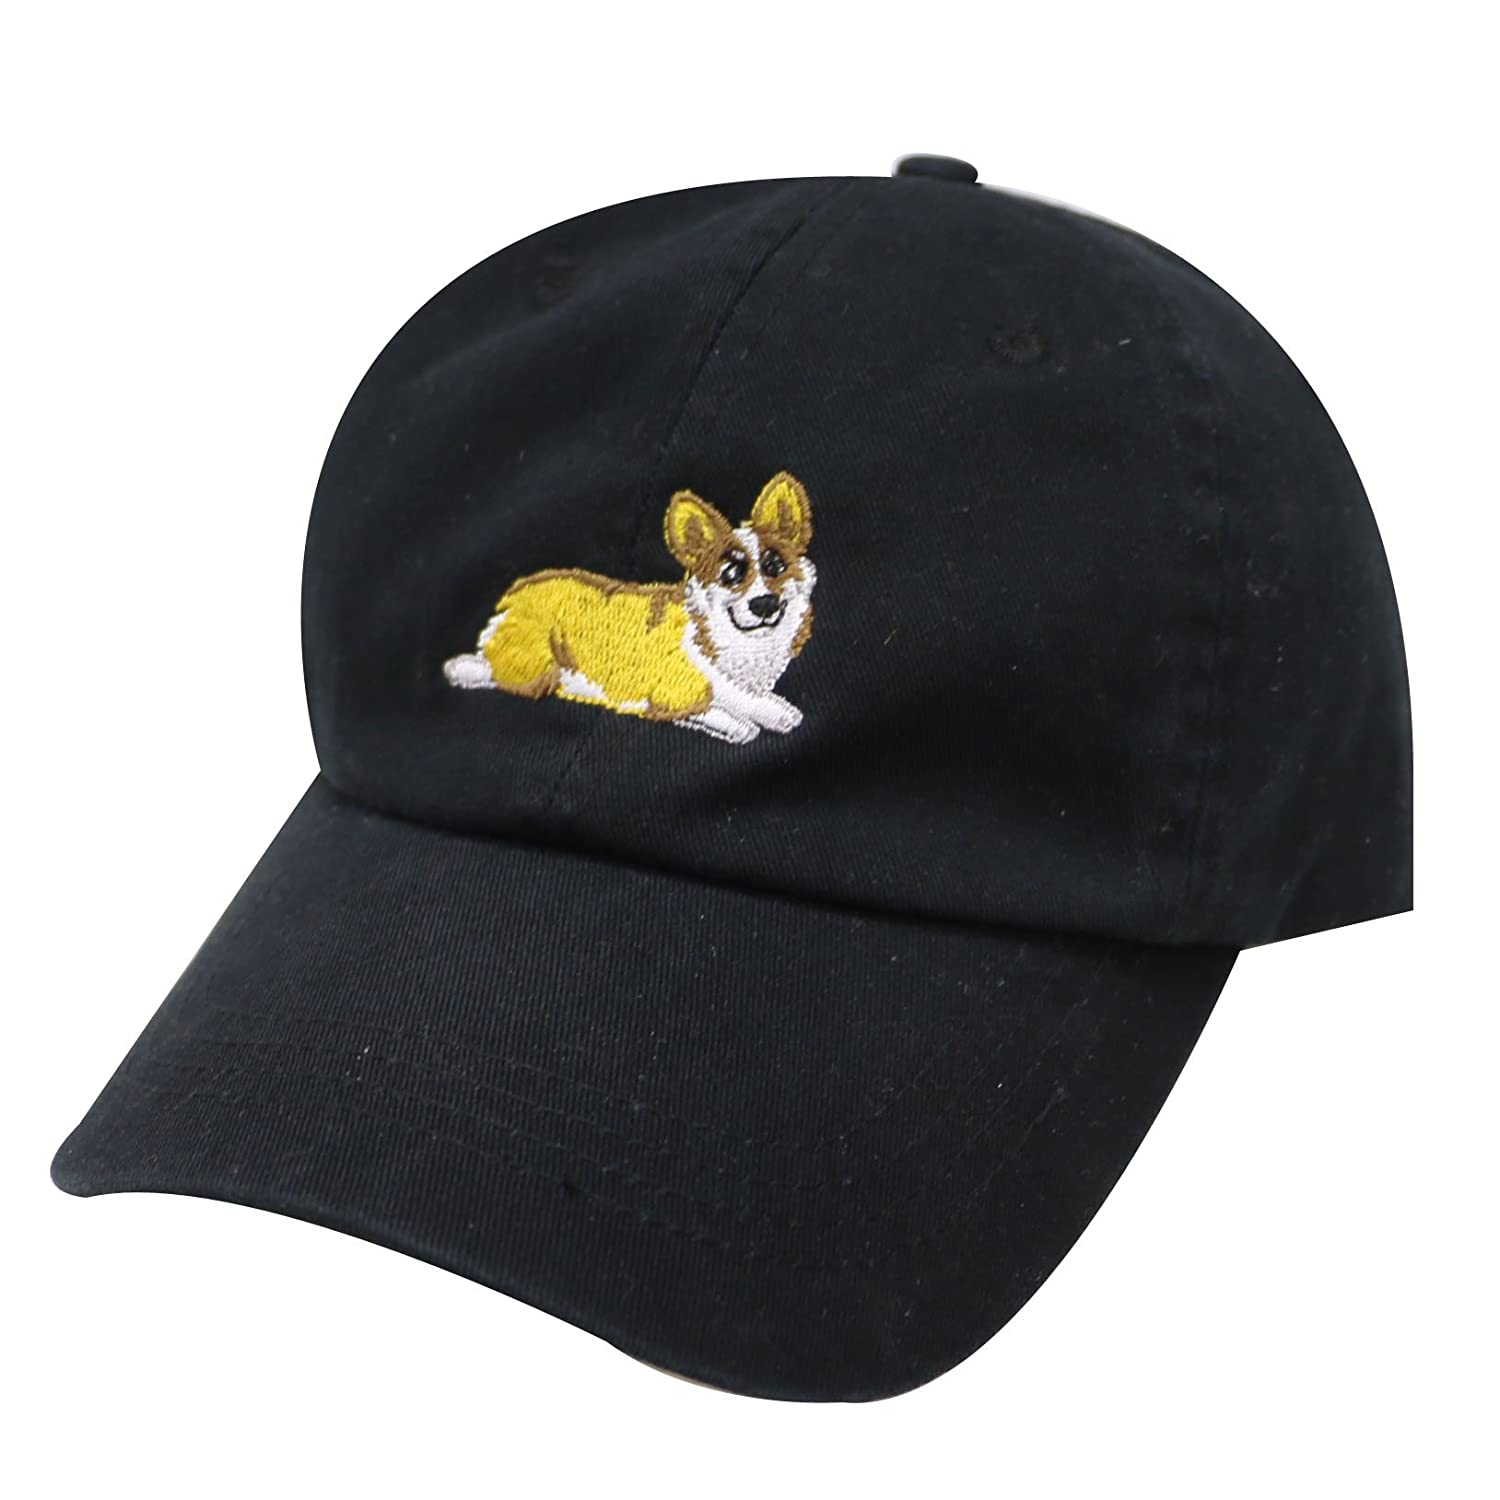 City Hunter C104 Welsi Corgi Dog Cotton Baseball Dad Caps 16 Colors (Black)  at Amazon Men s Clothing store  efeb121e893